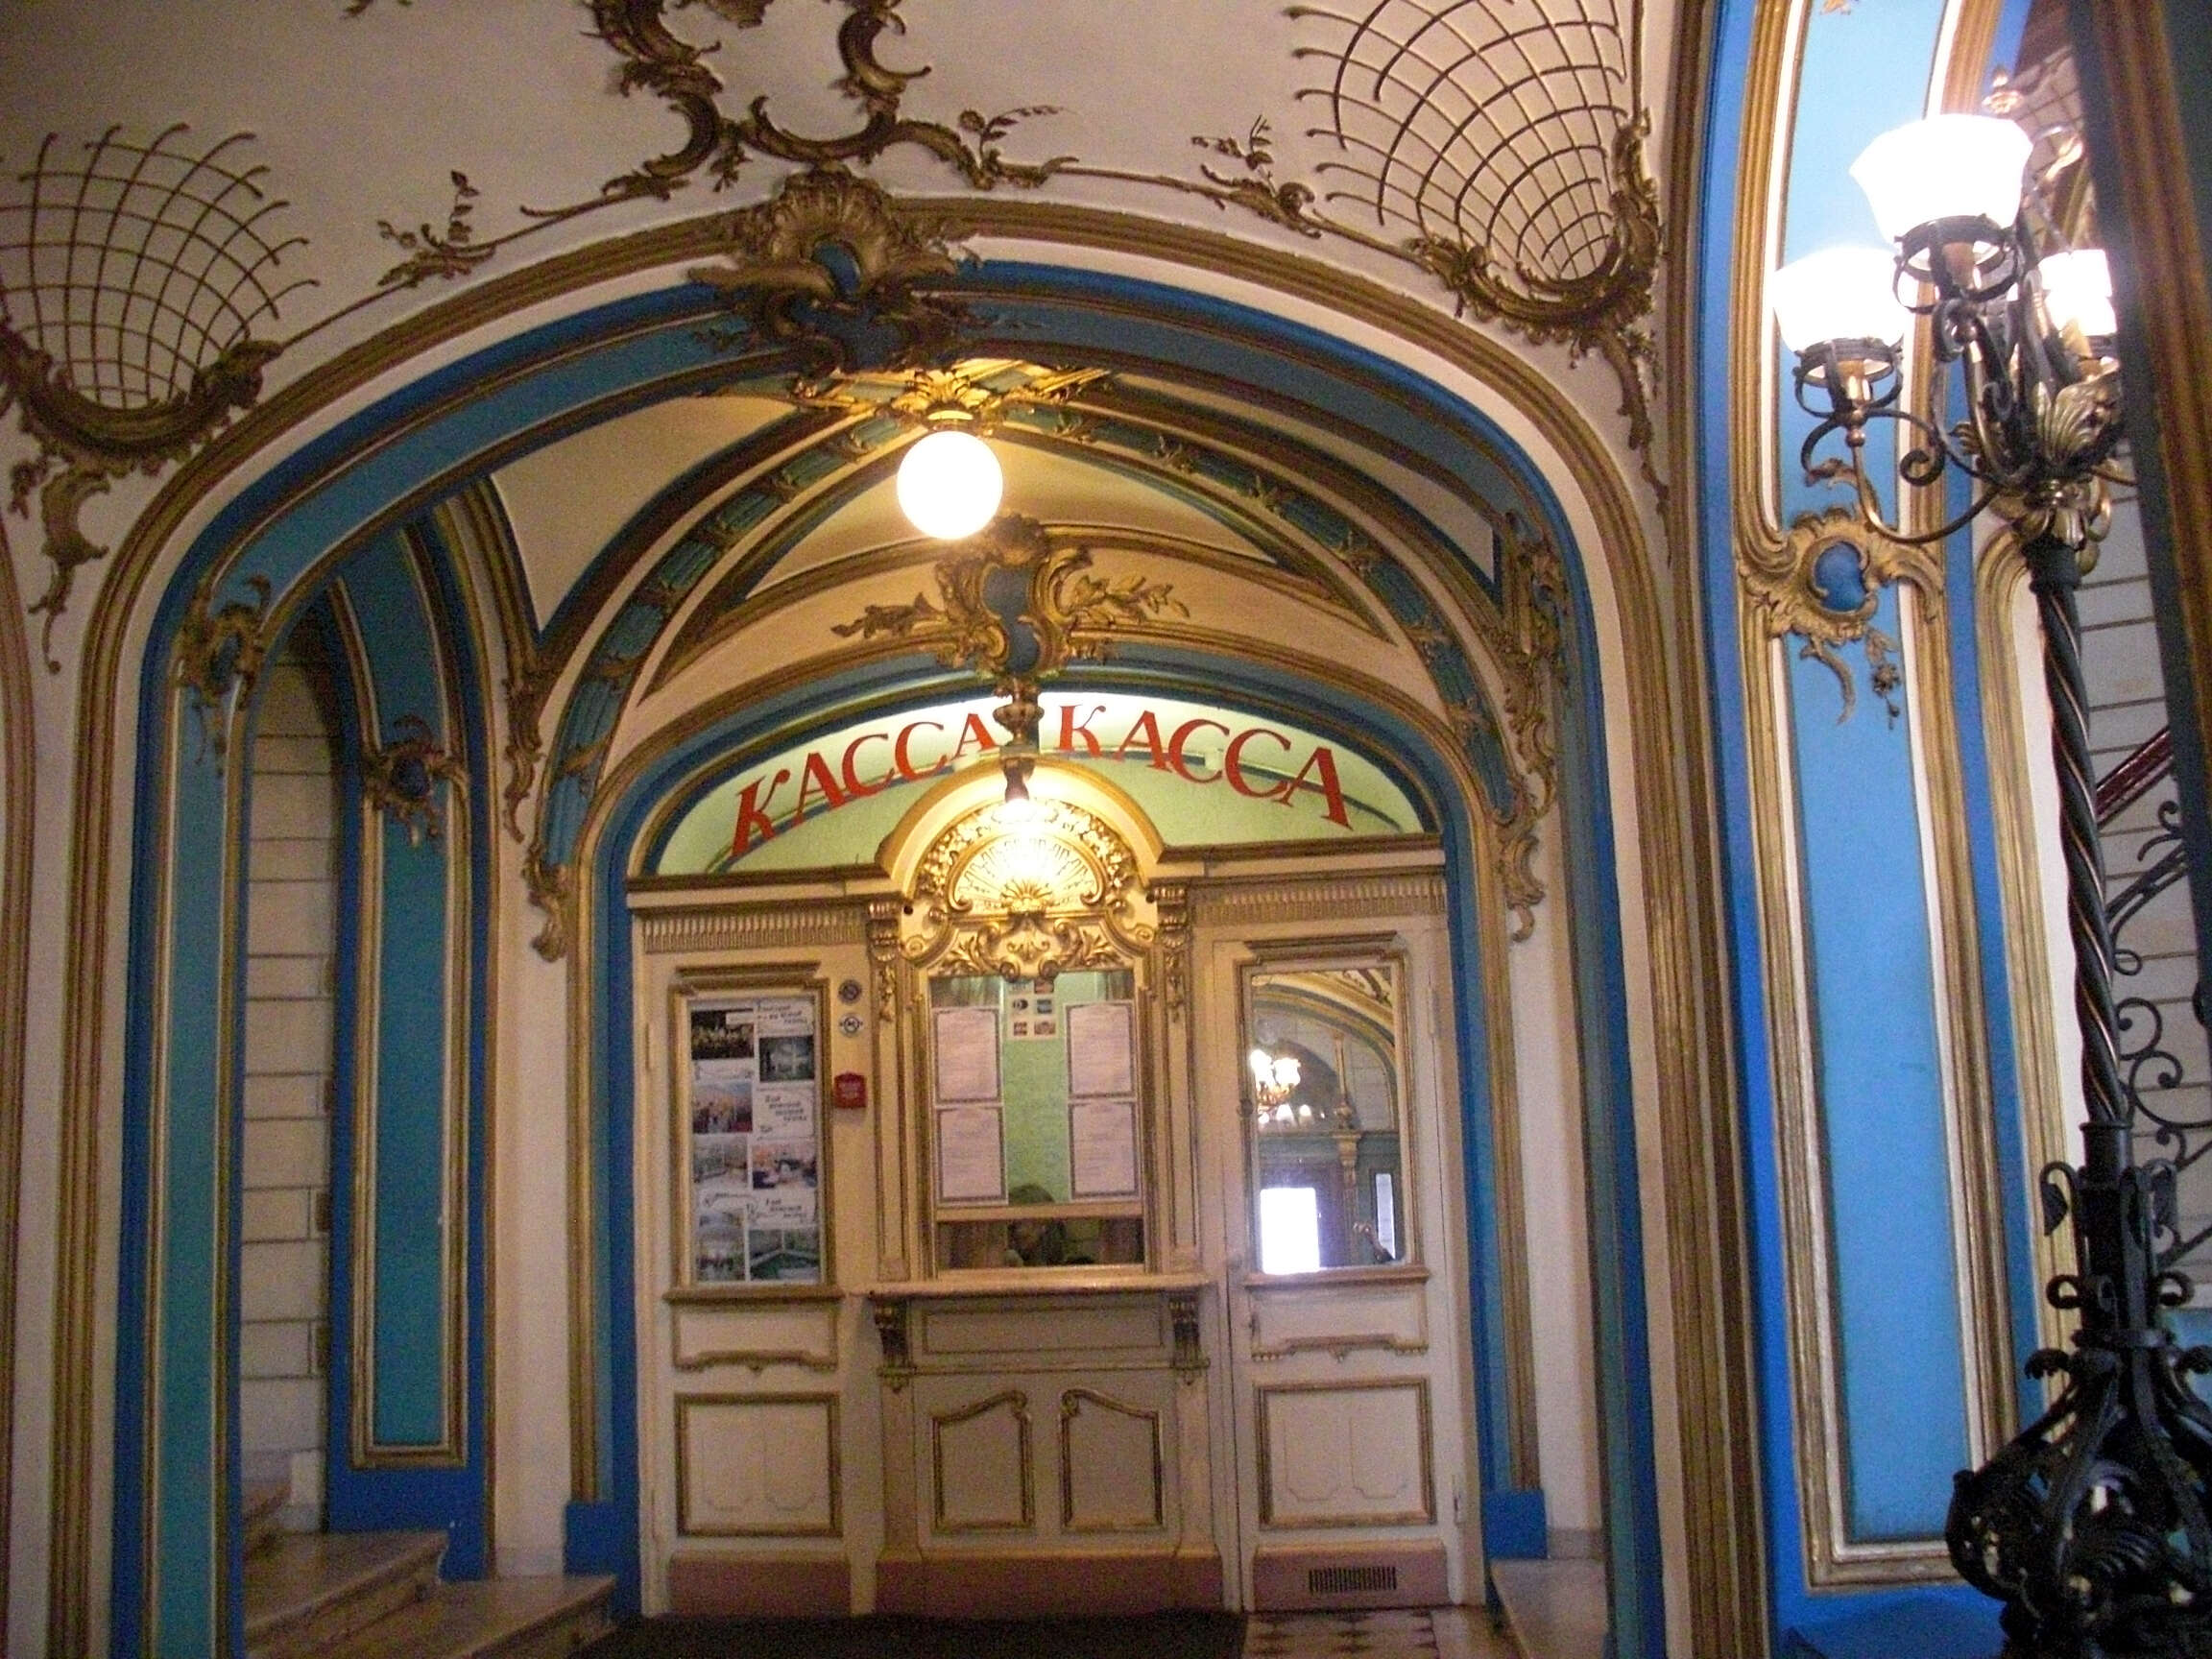 Banya: Our Experience in One of Russia's Historic Steam Baths